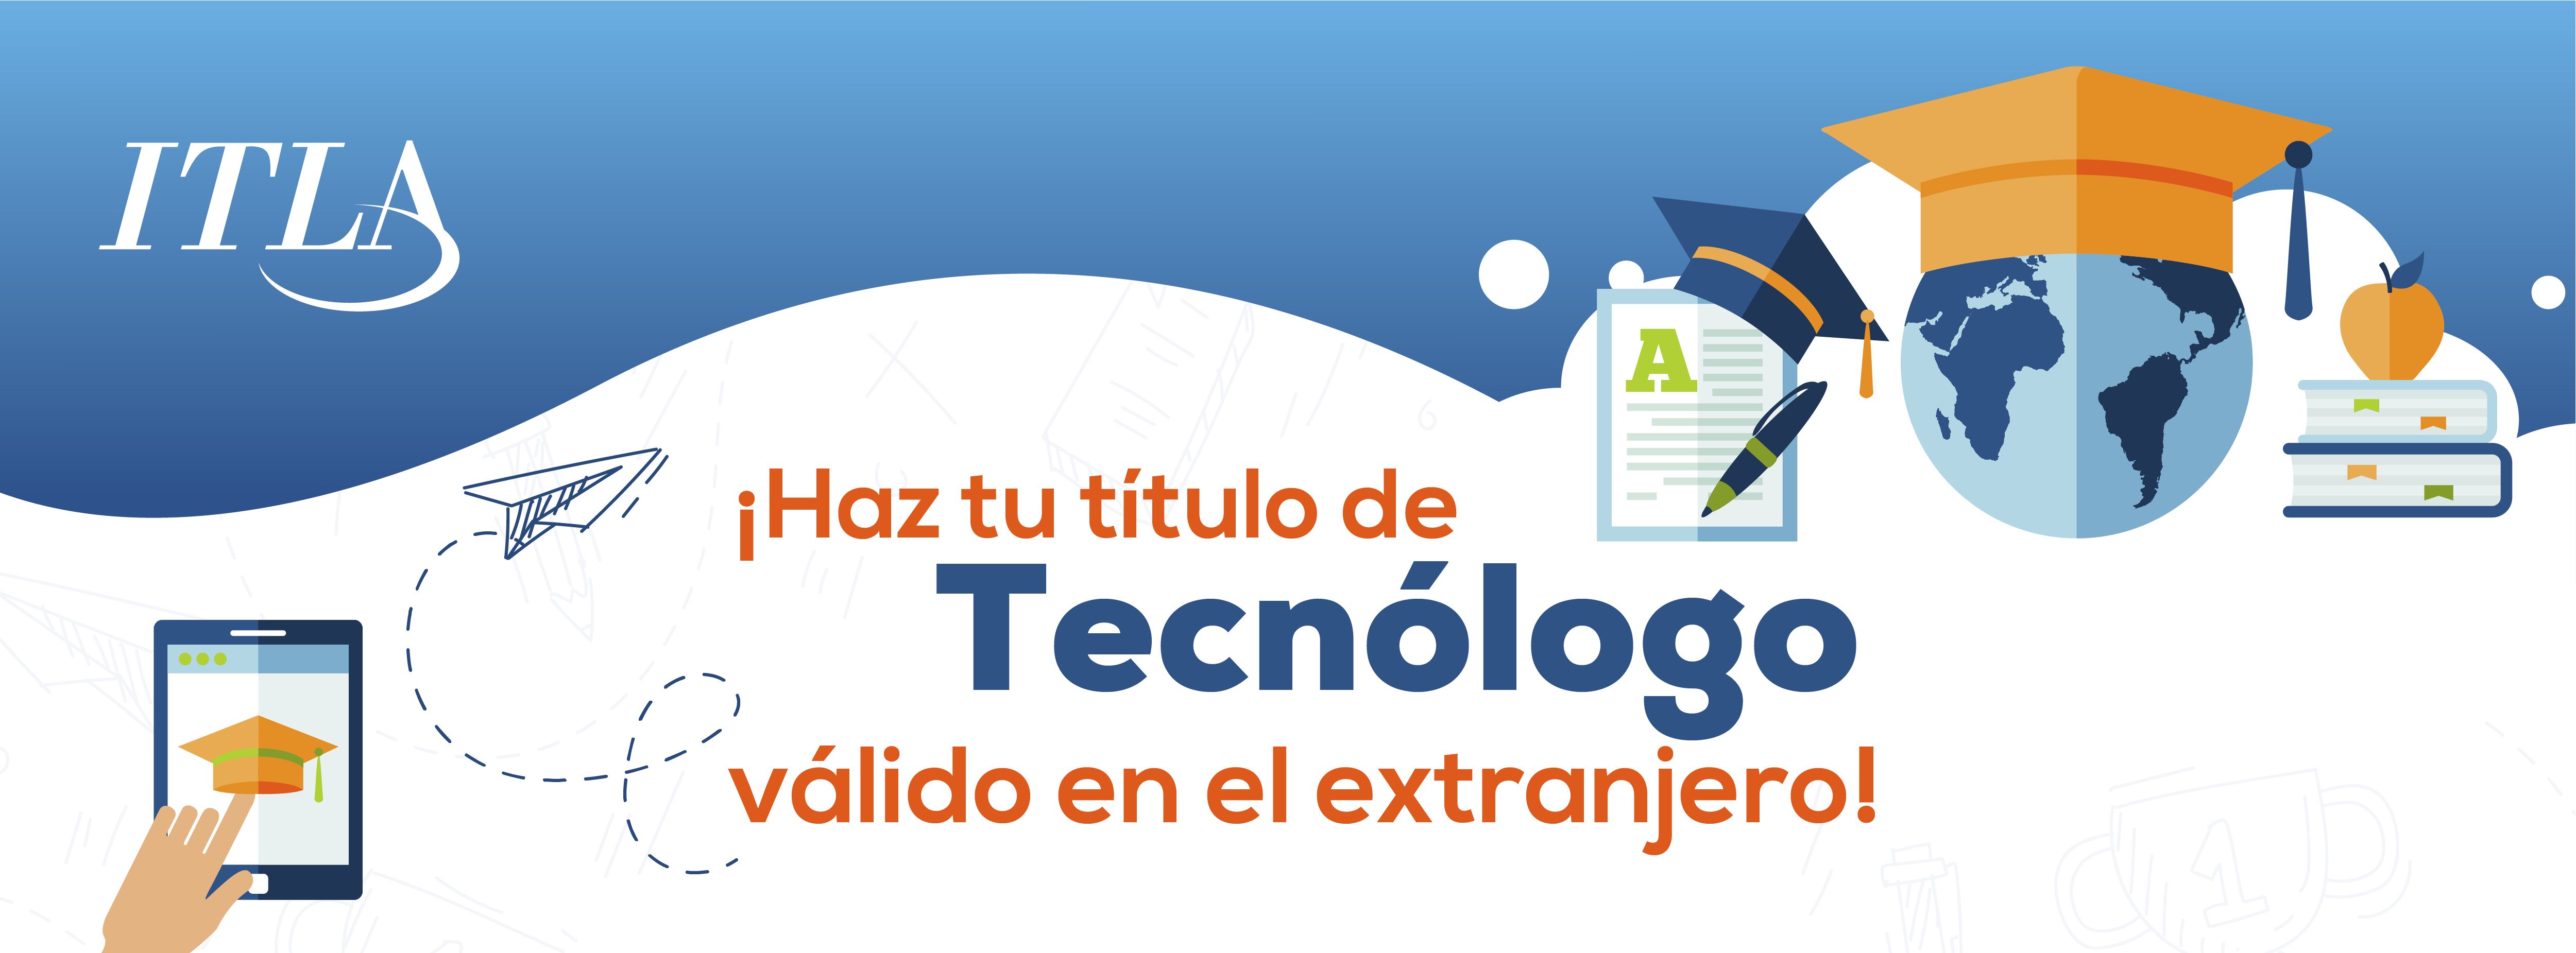 Ir a https://itla.edu.do/images/banners/titulo-extranjero-informacion.jpg